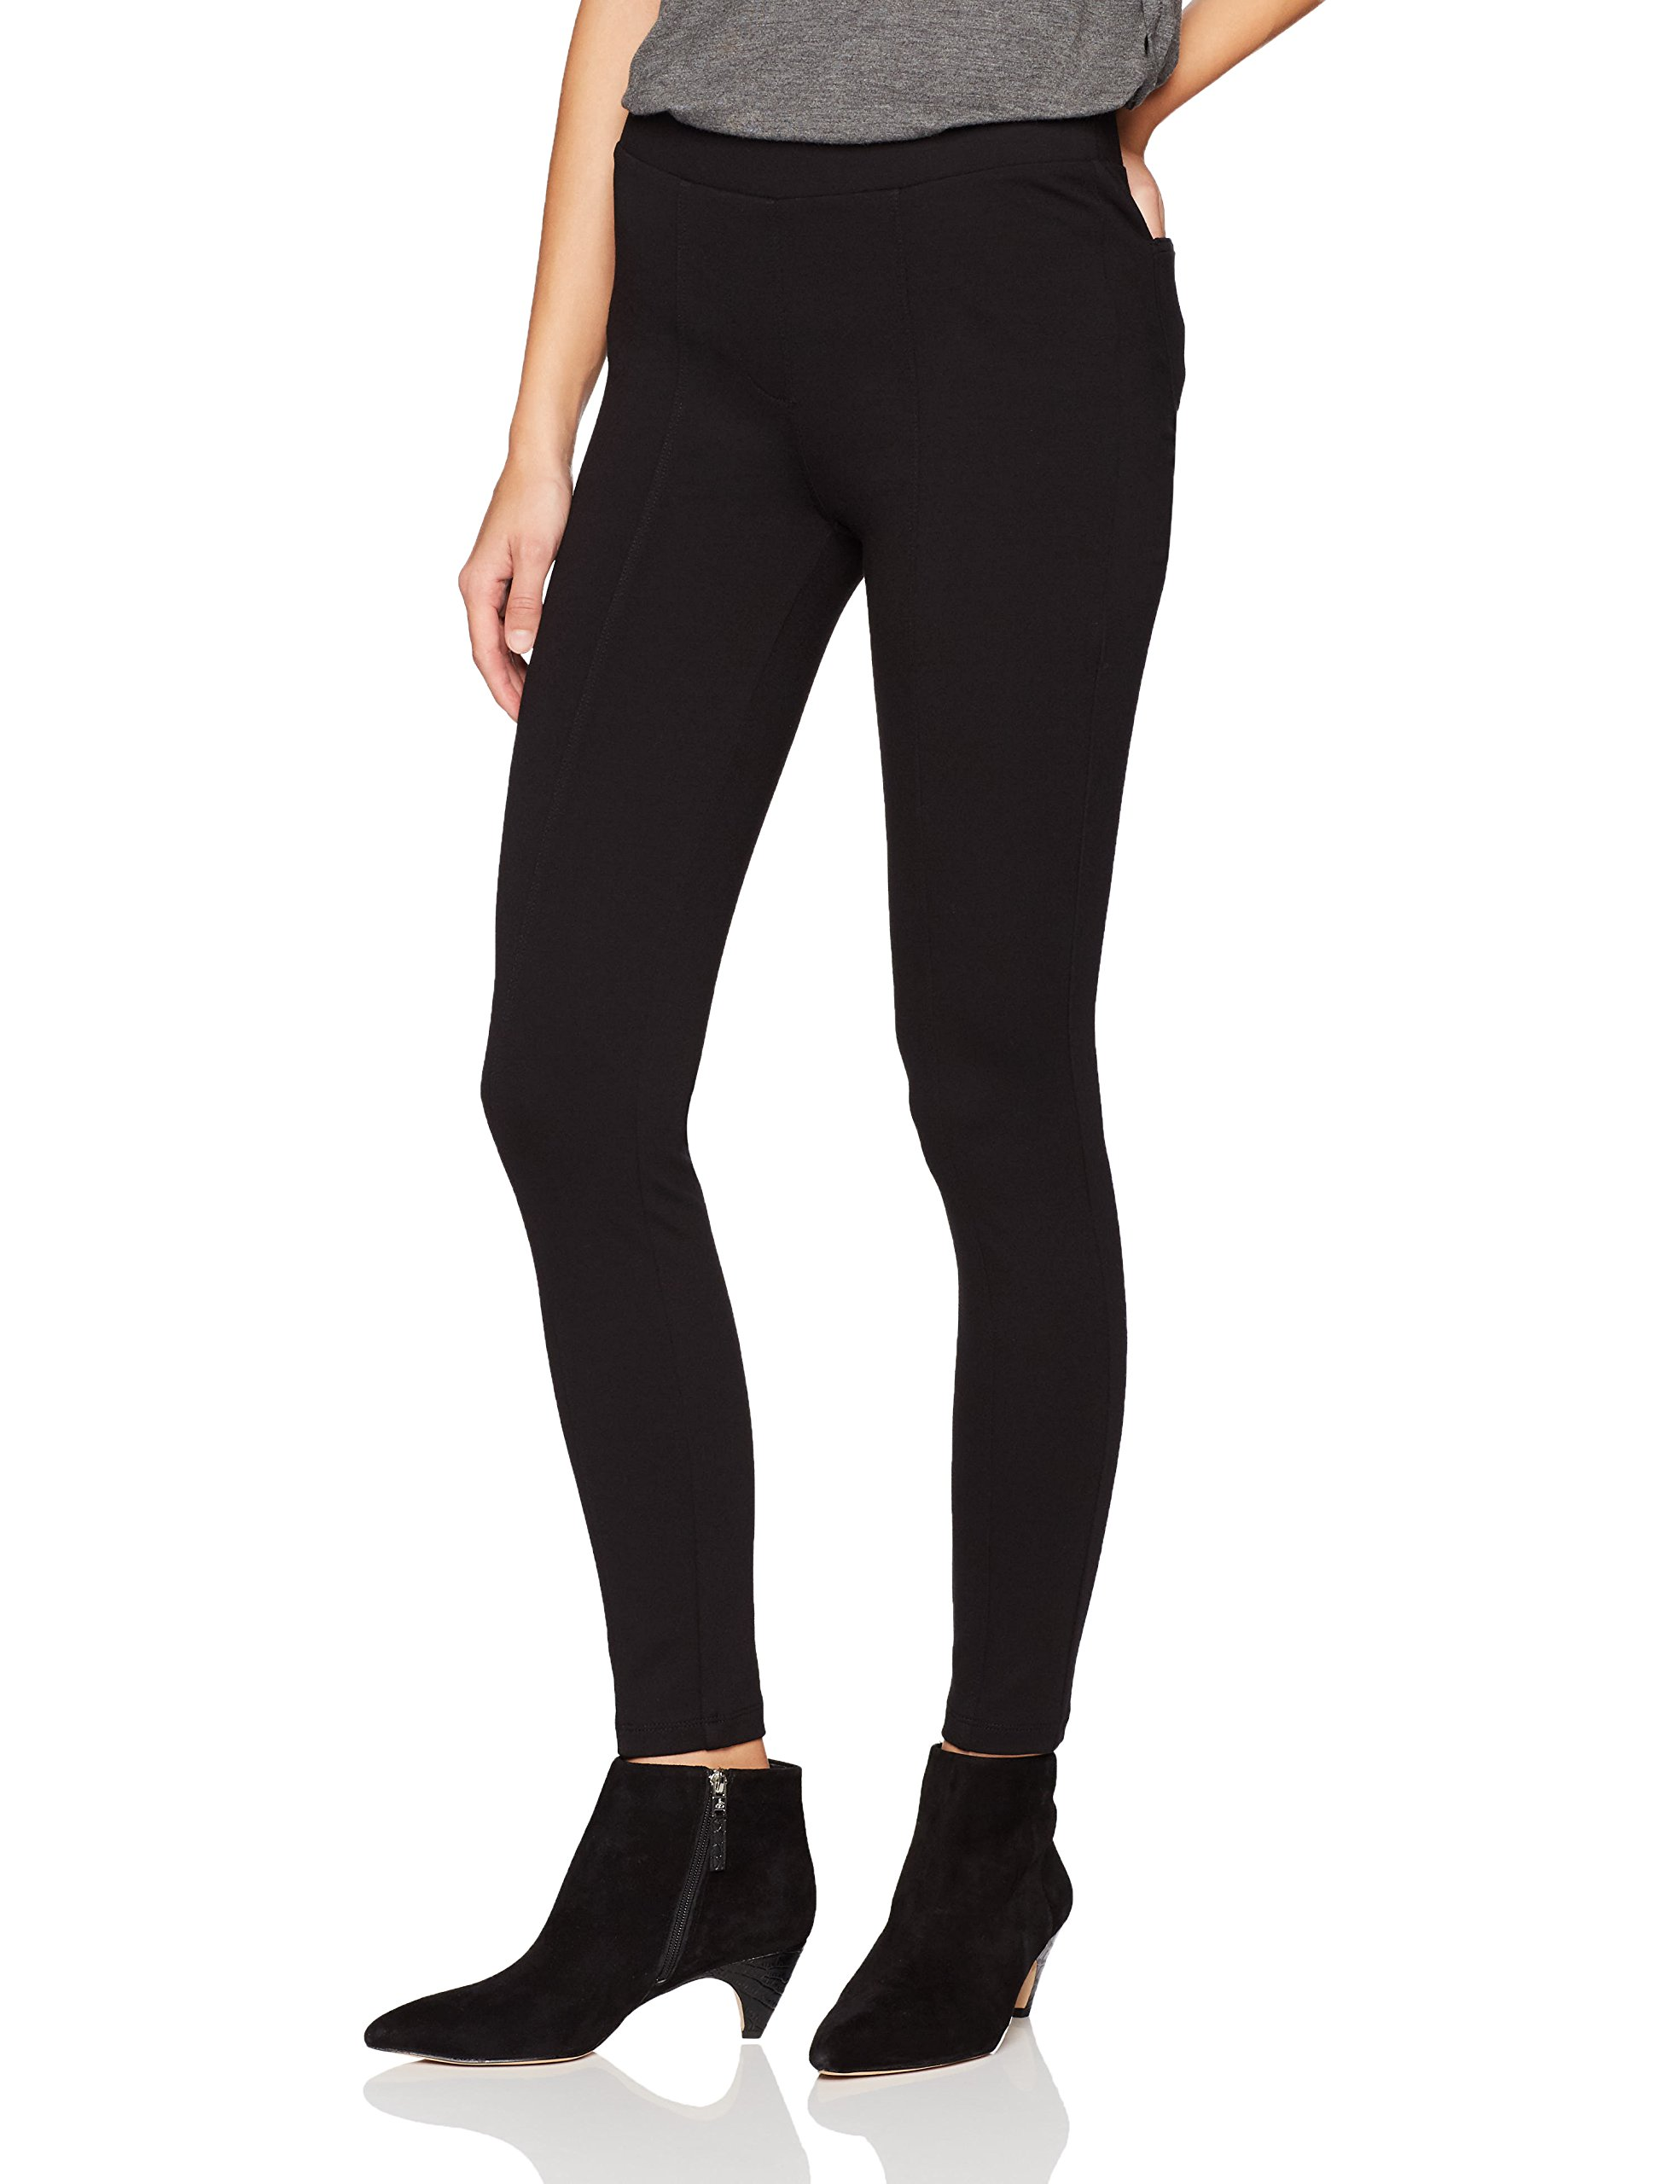 Daily Ritual Women's Seamed Front, 2-Pocket Ponte Knit Legging, Black, XL, Short